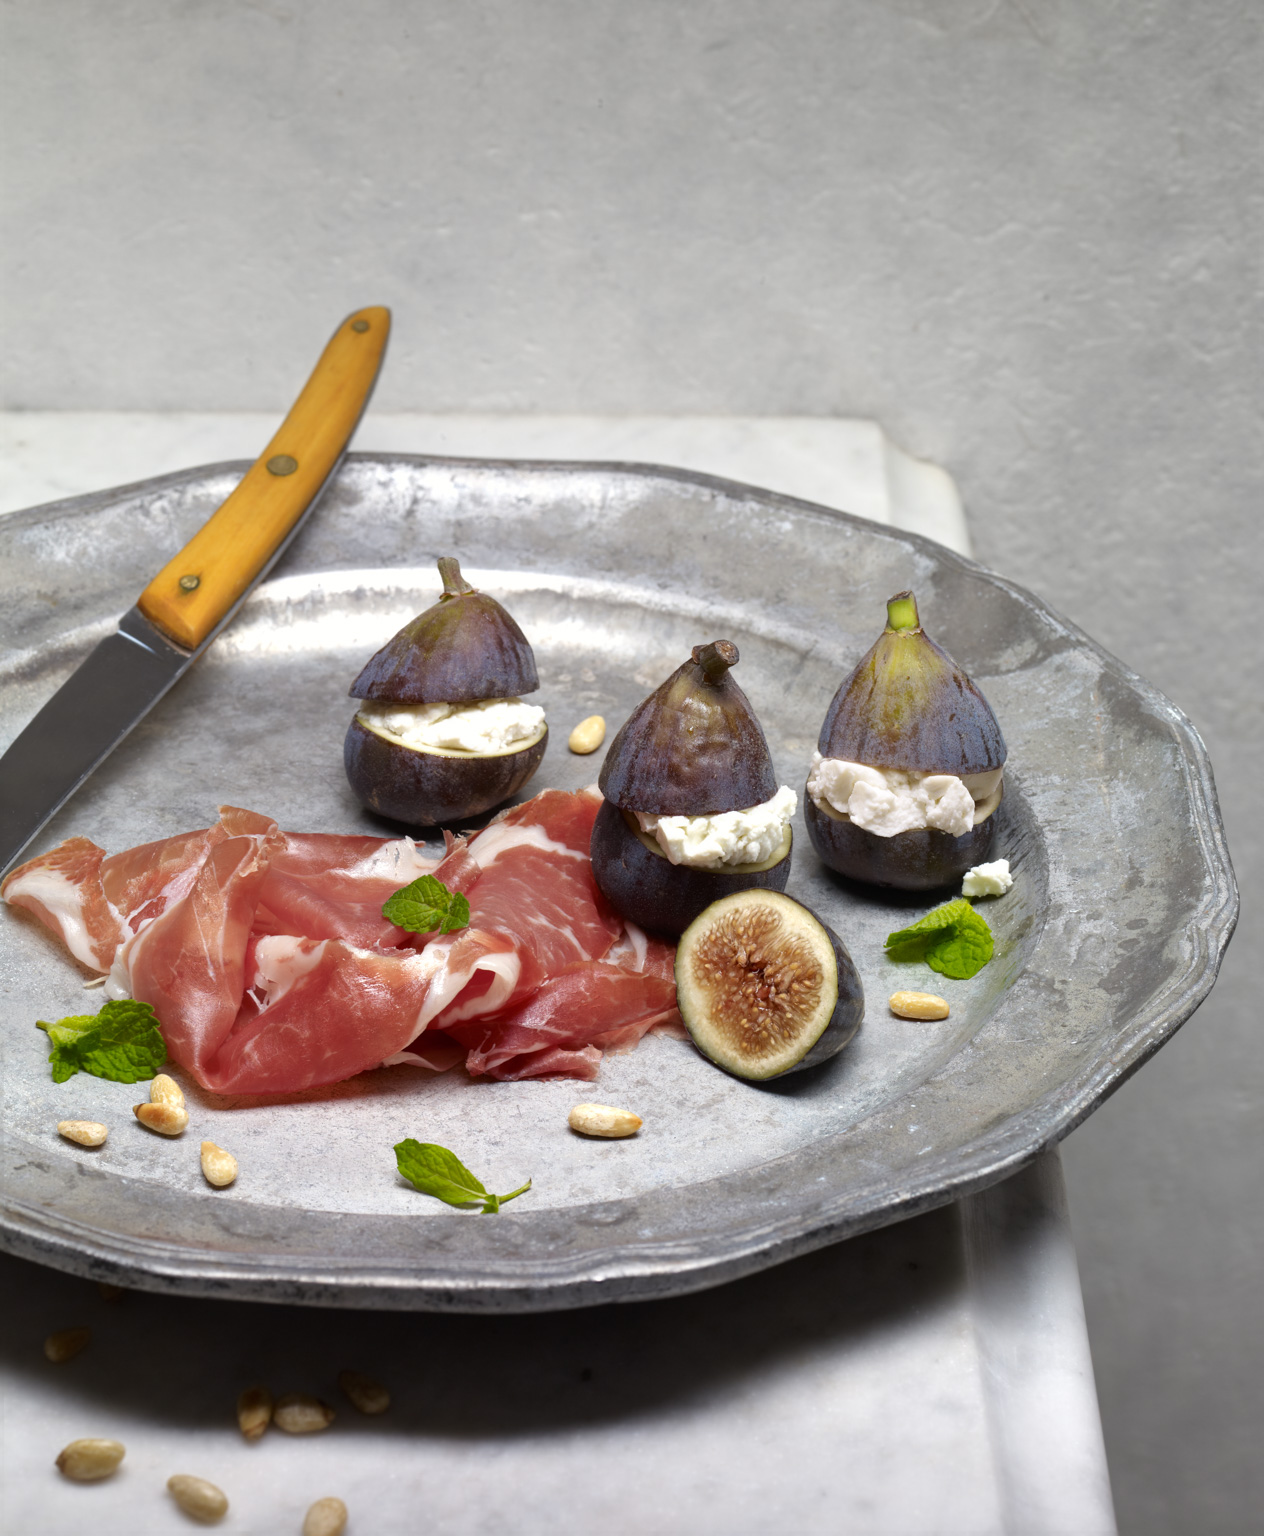 018_stuffed_fig_082